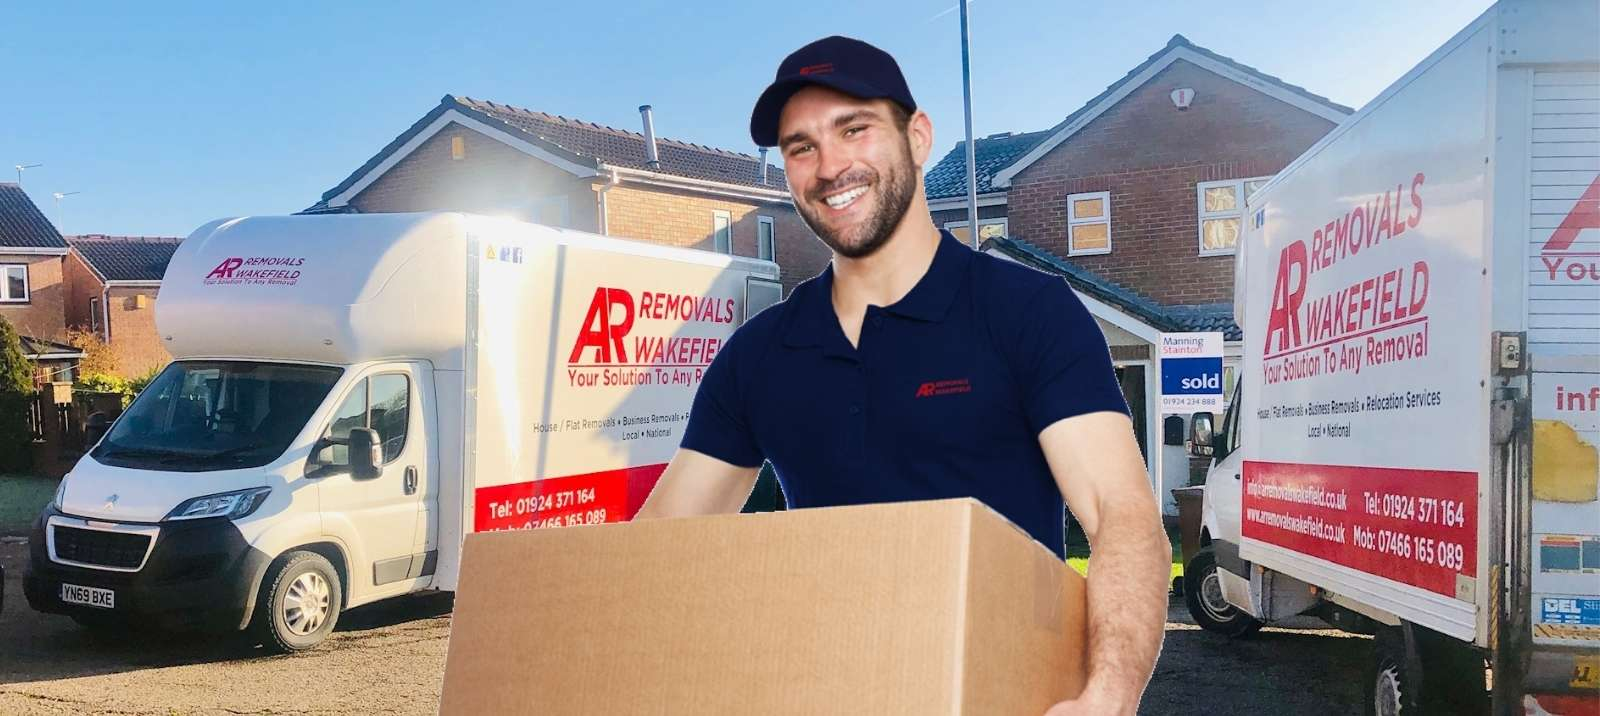 Removals Company Leeds, Removals In Leeds By AR Removals